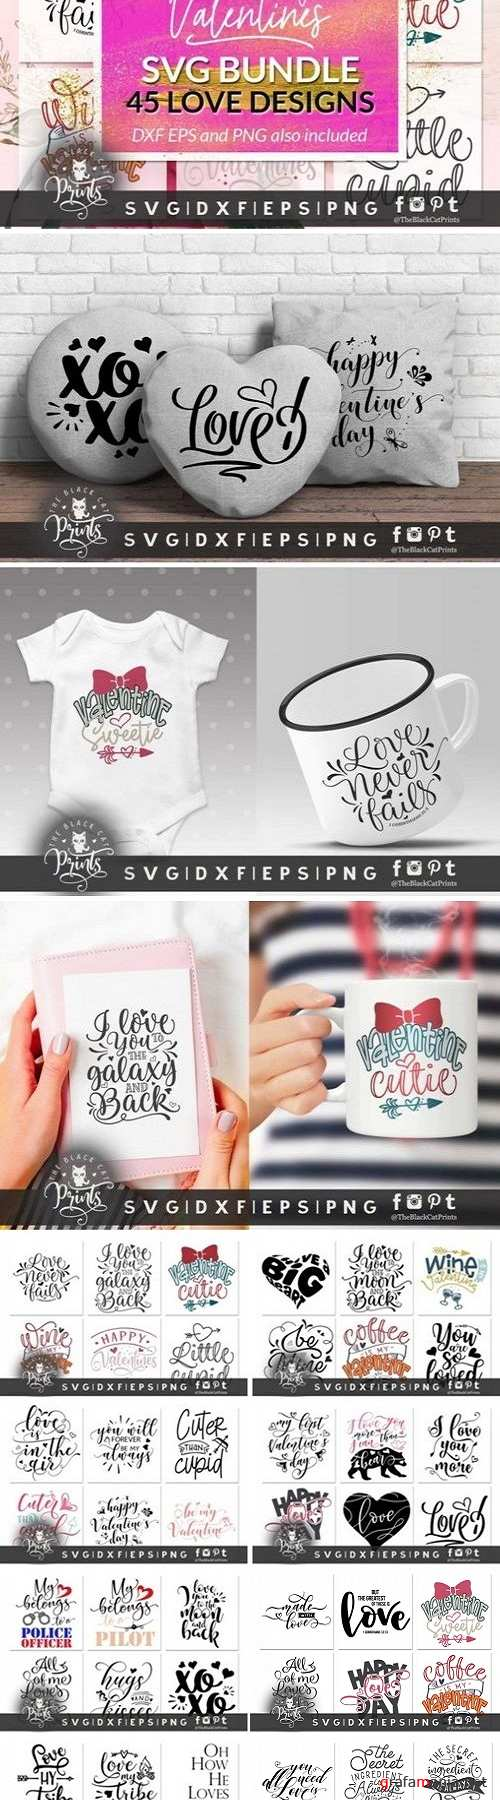 Valentines bundle SVG DXF EPS PNG 3360833 - 3521746